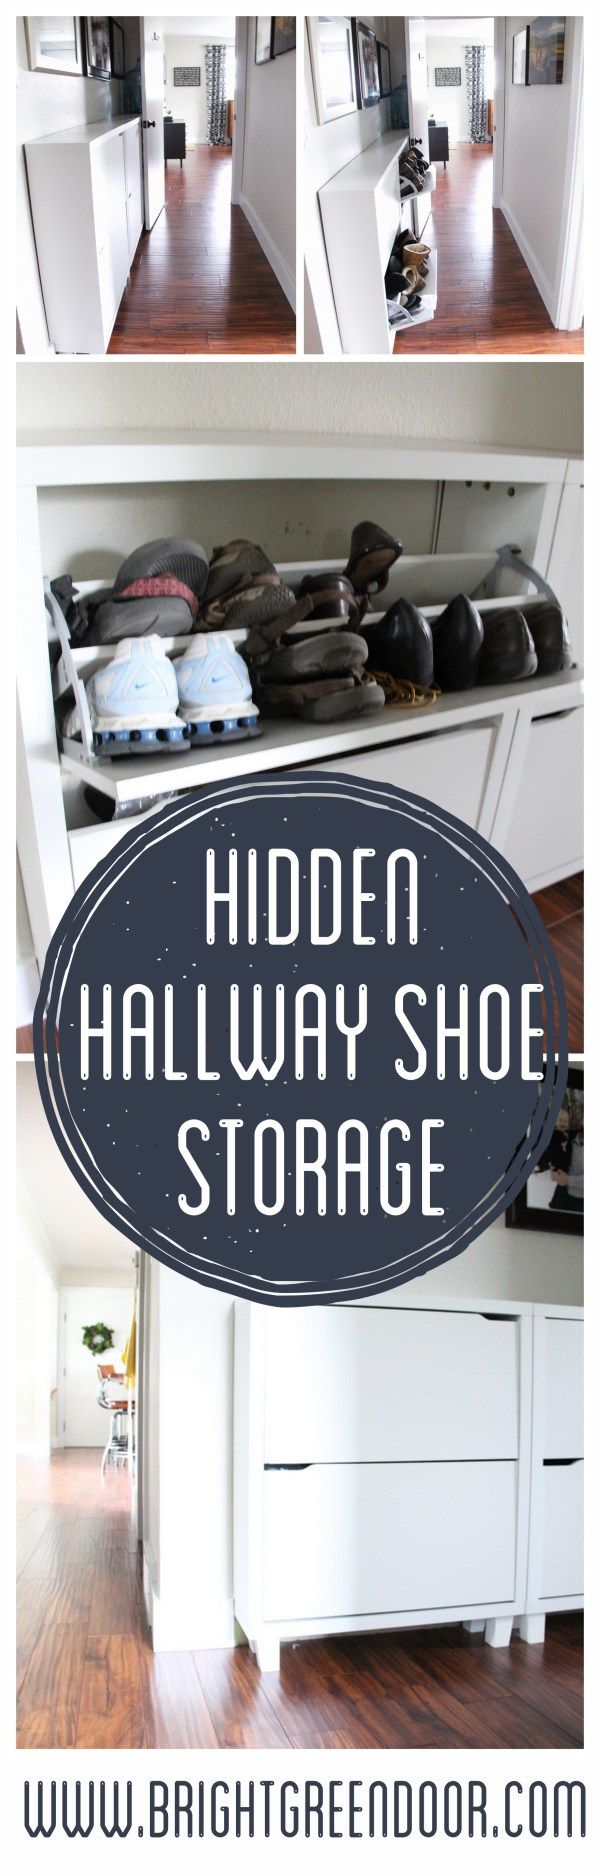 Hallway Shoe Storage Solution Shoe Cabinets in Hallway www.BrightGreenDoor.com